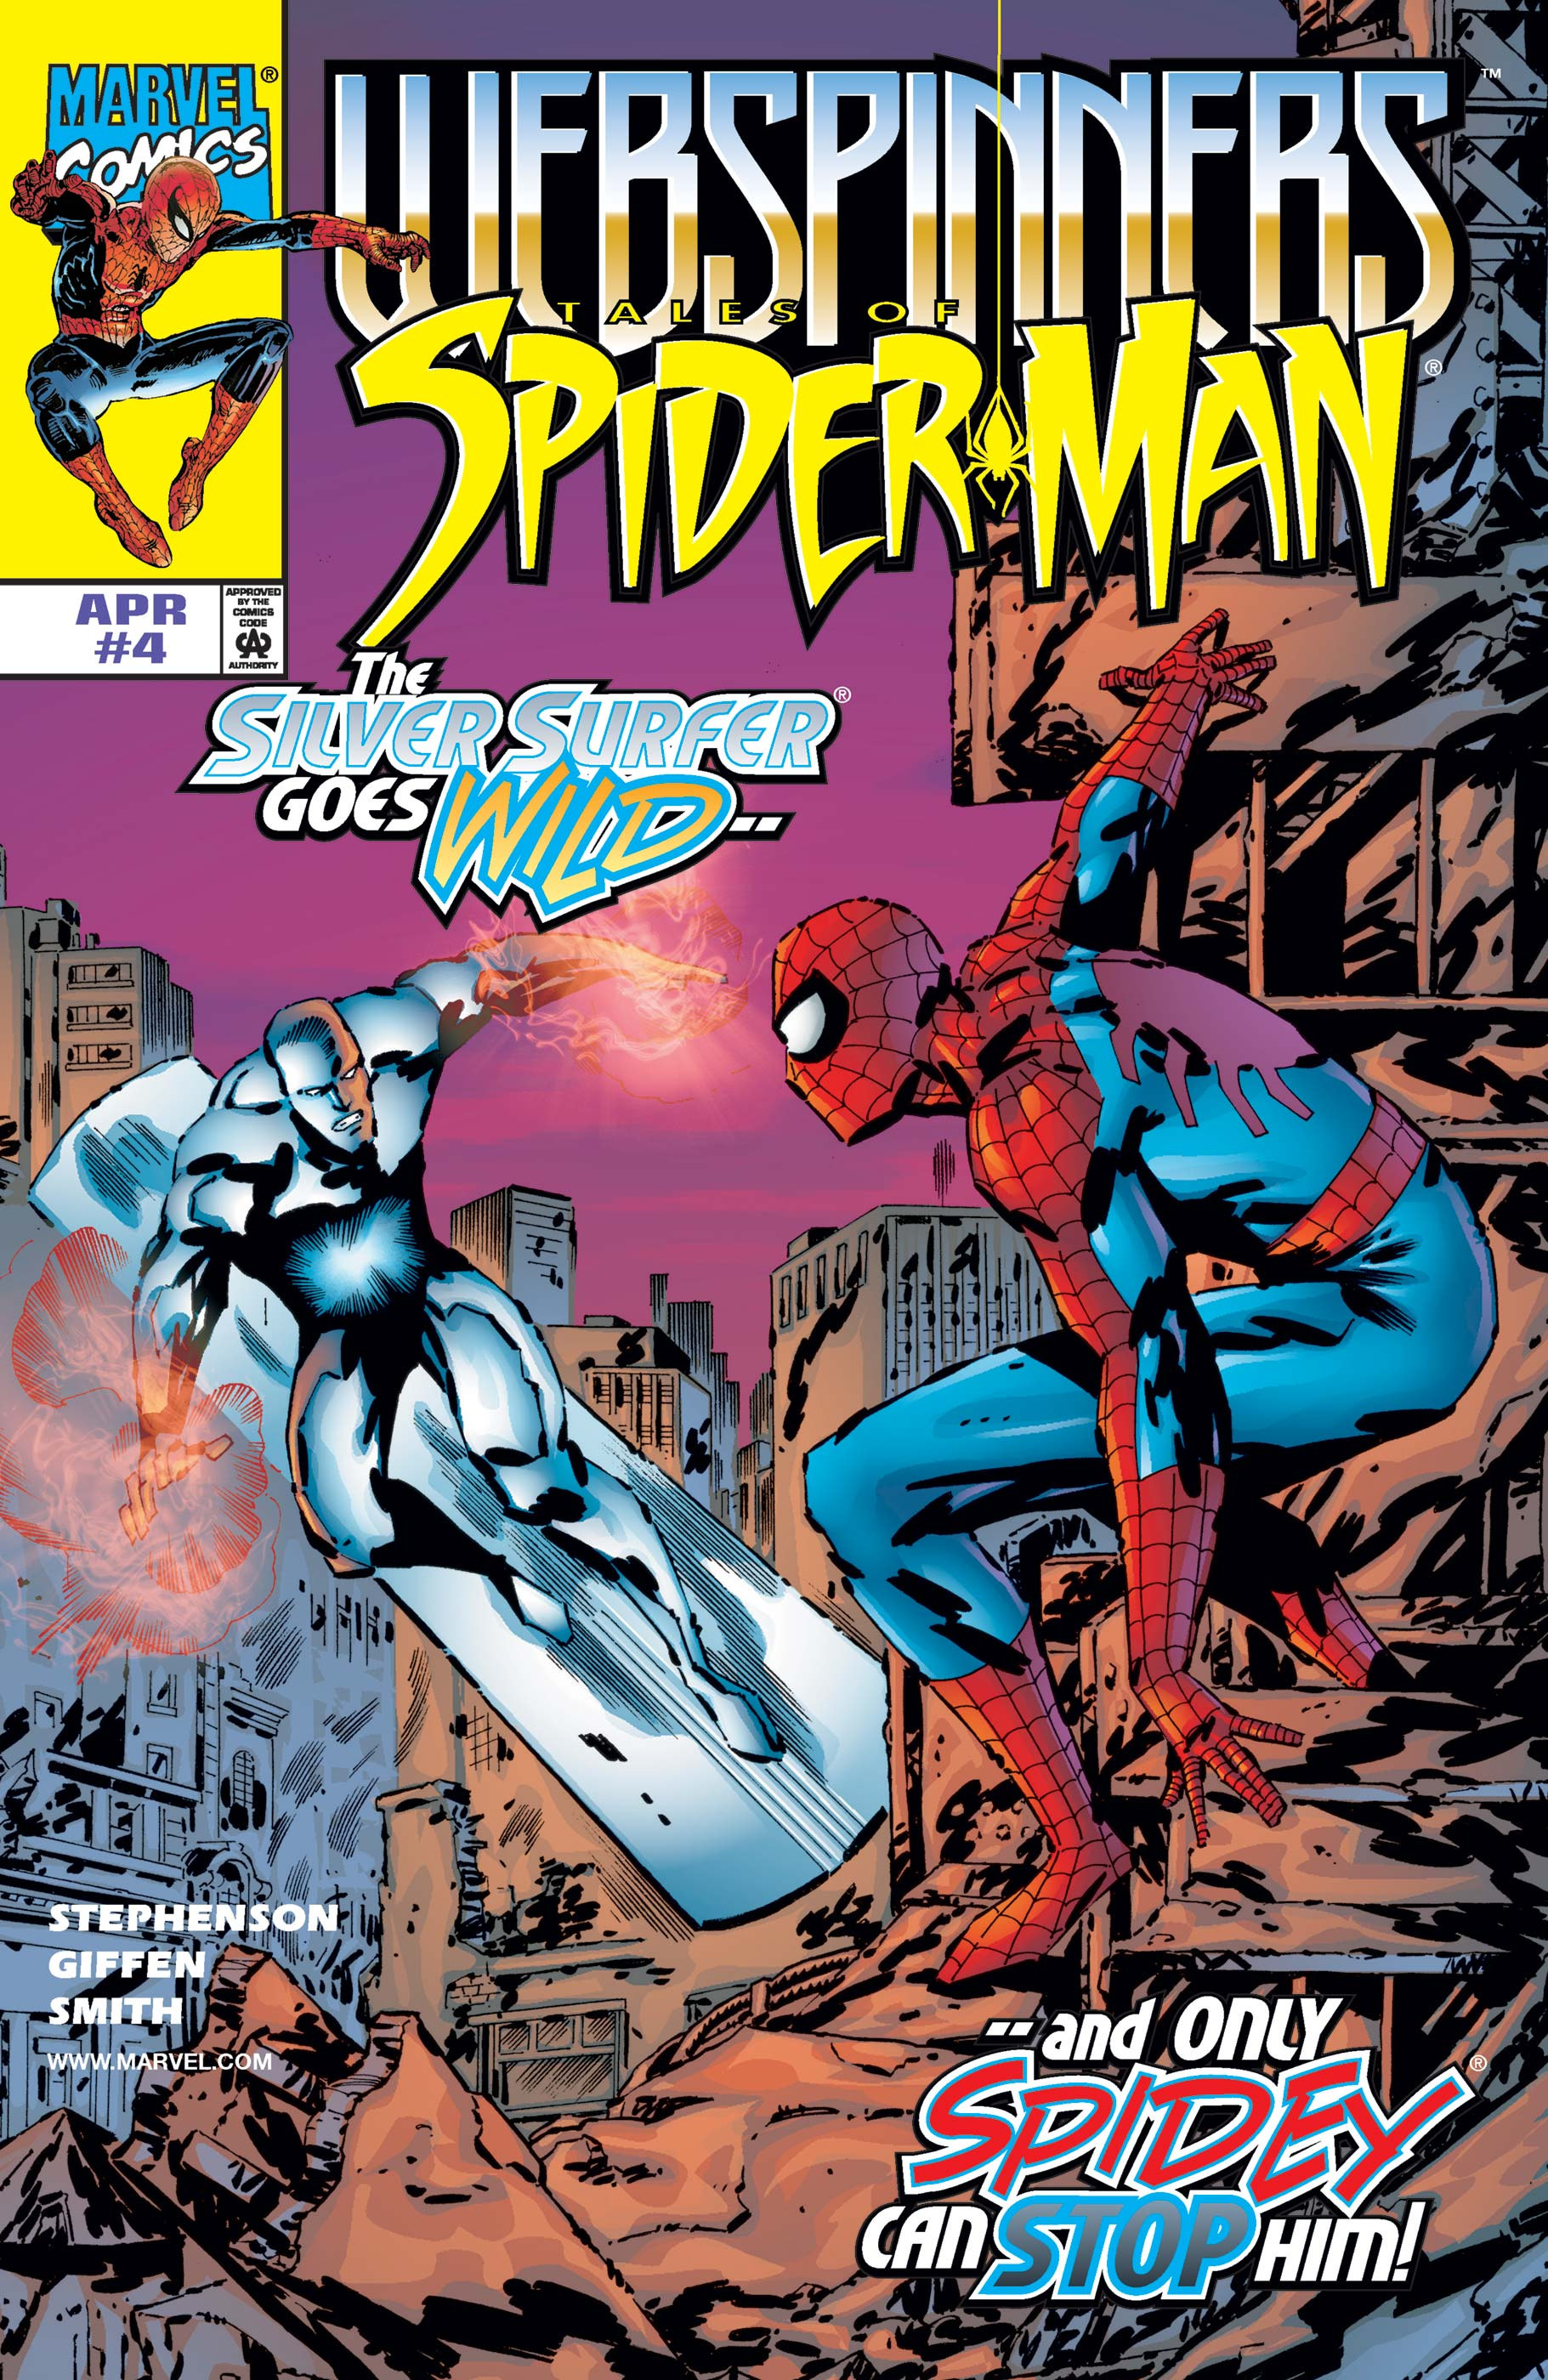 Webspinners: Tales of Spider-Man (1999) #4